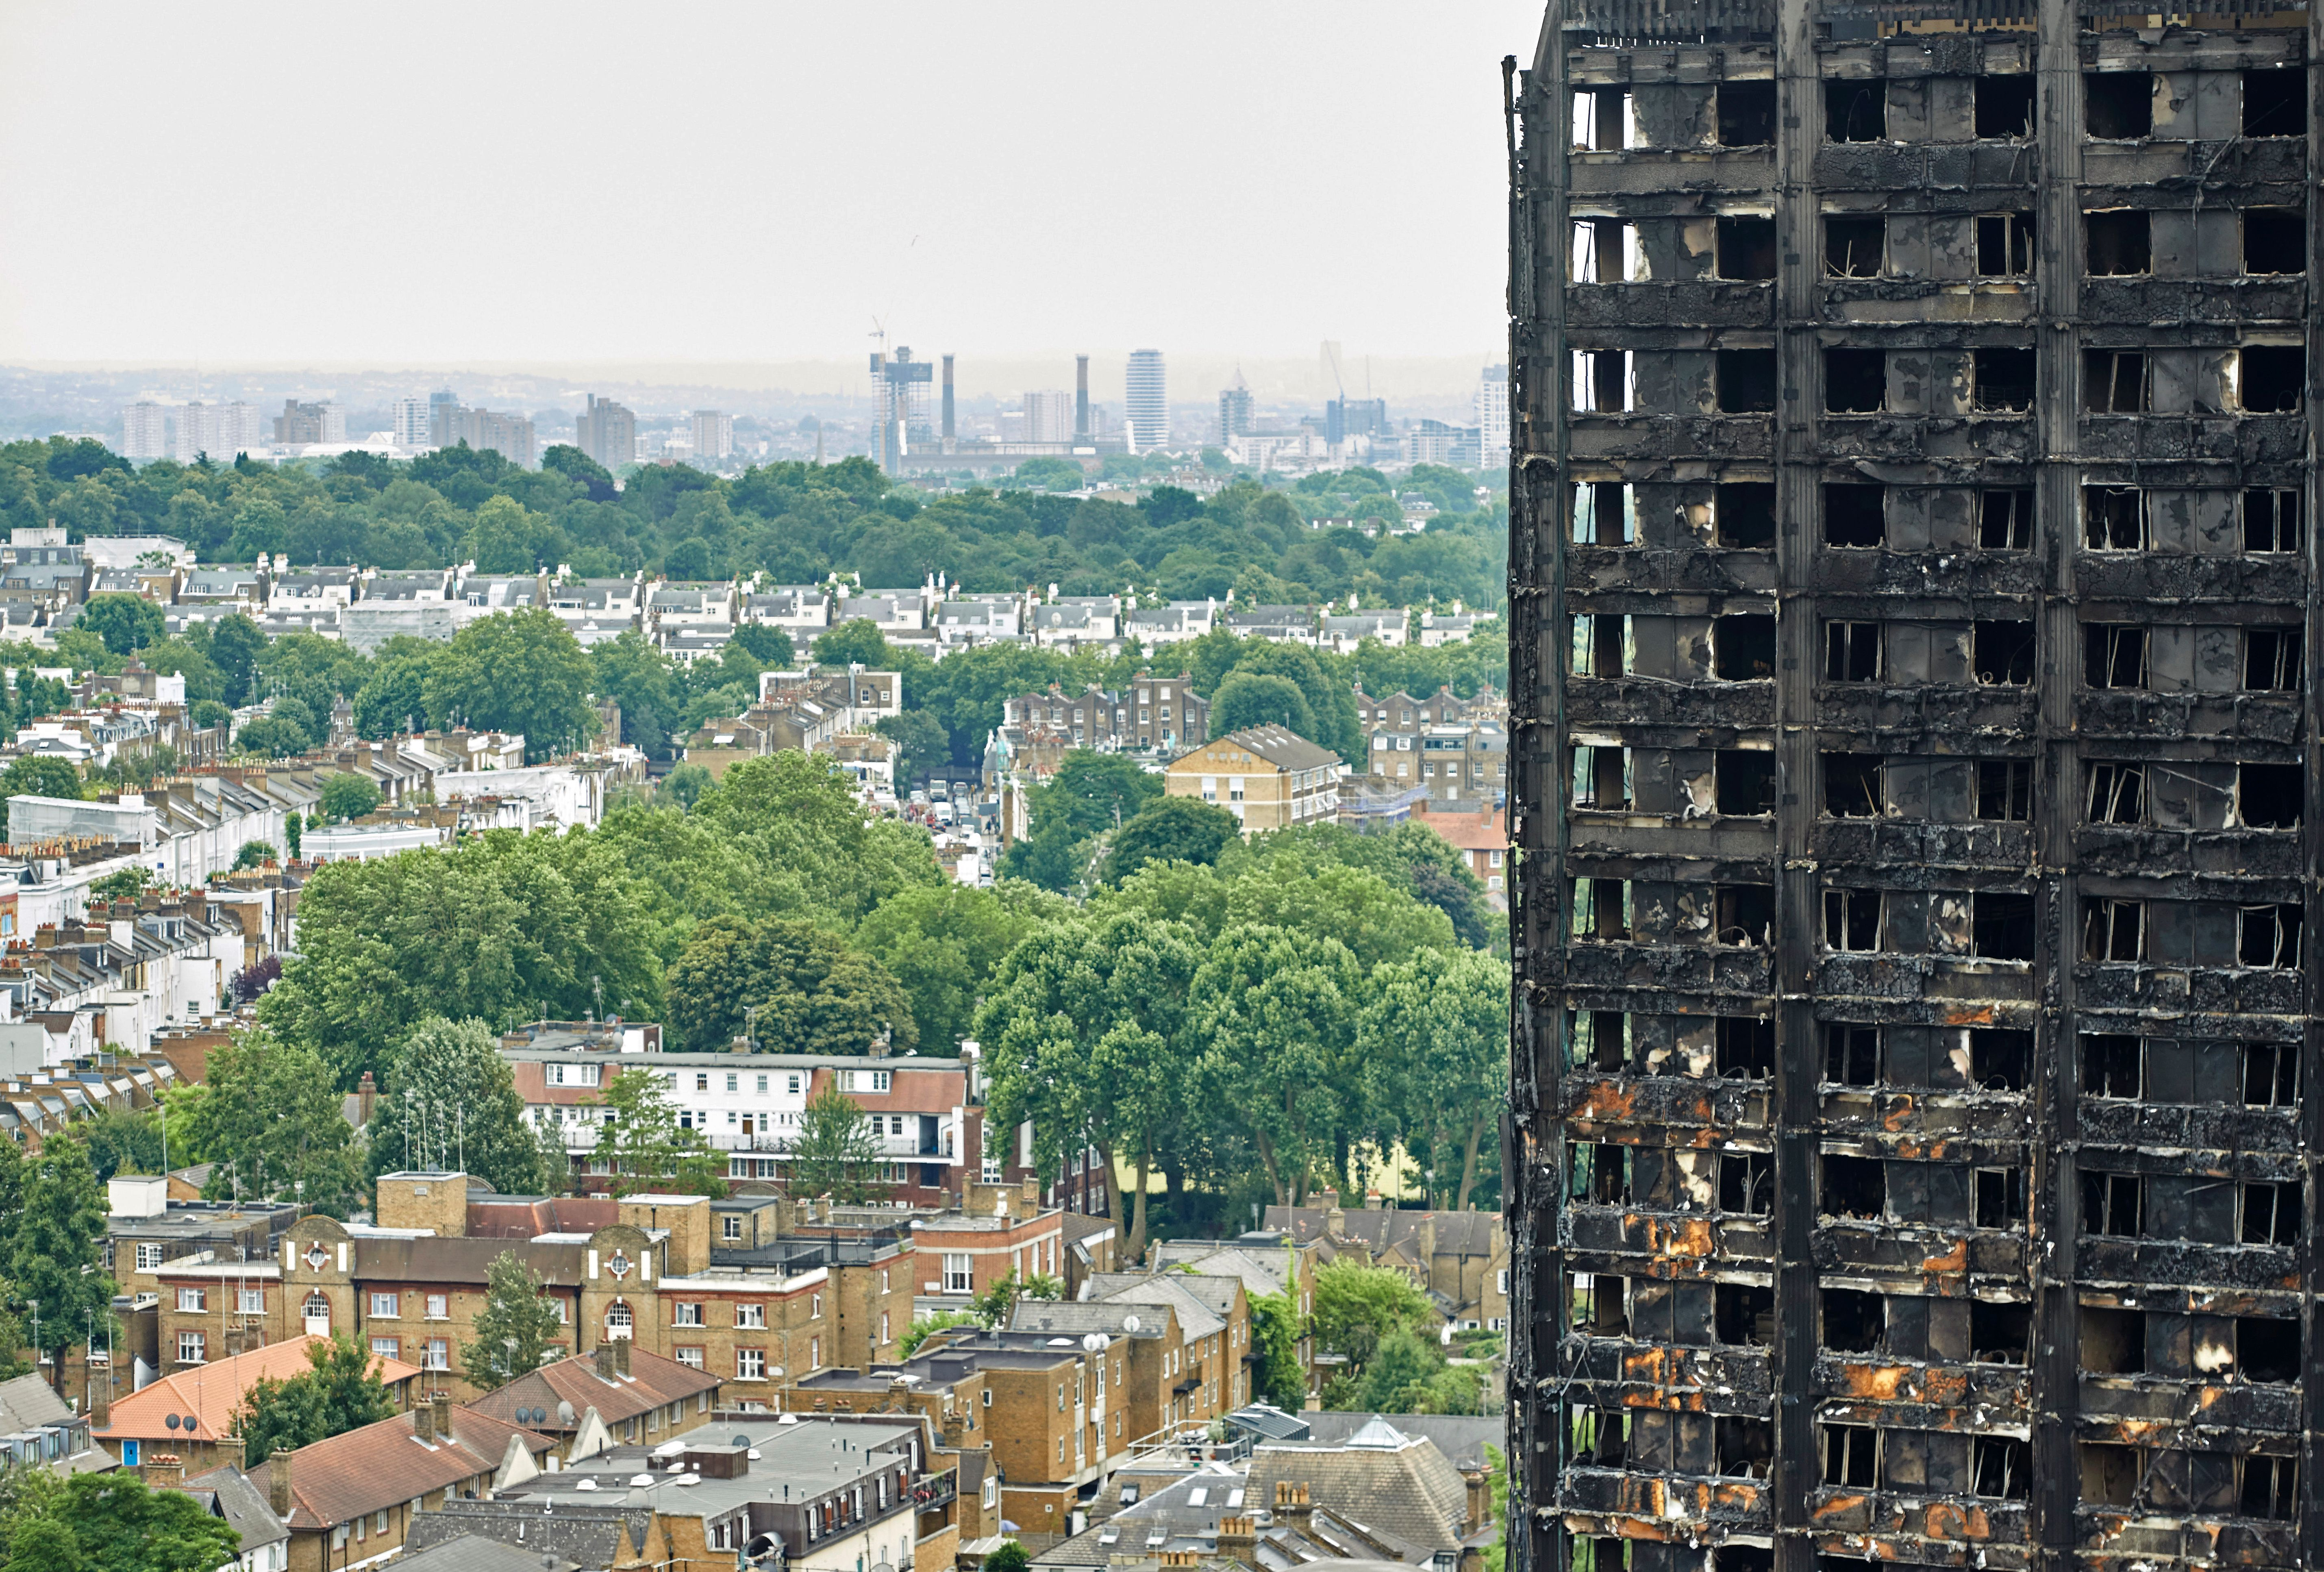 The outer walls of the burnt out shell of the Grenfell Tower block in north Kensington, west London on June 22, 2017.